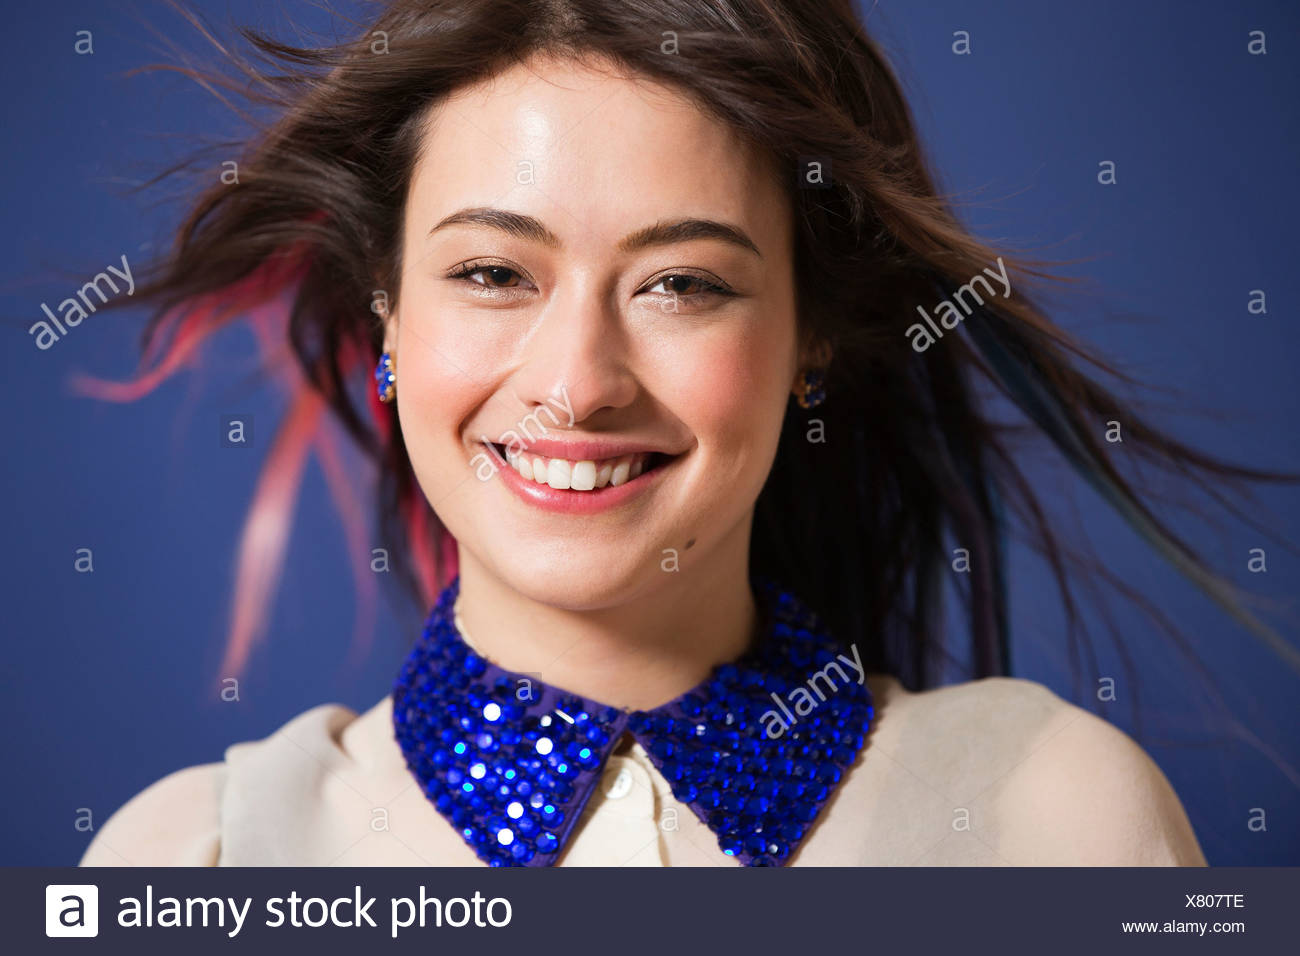 Portrait of young woman with dyed hair and blue sequin collar - Stock Image